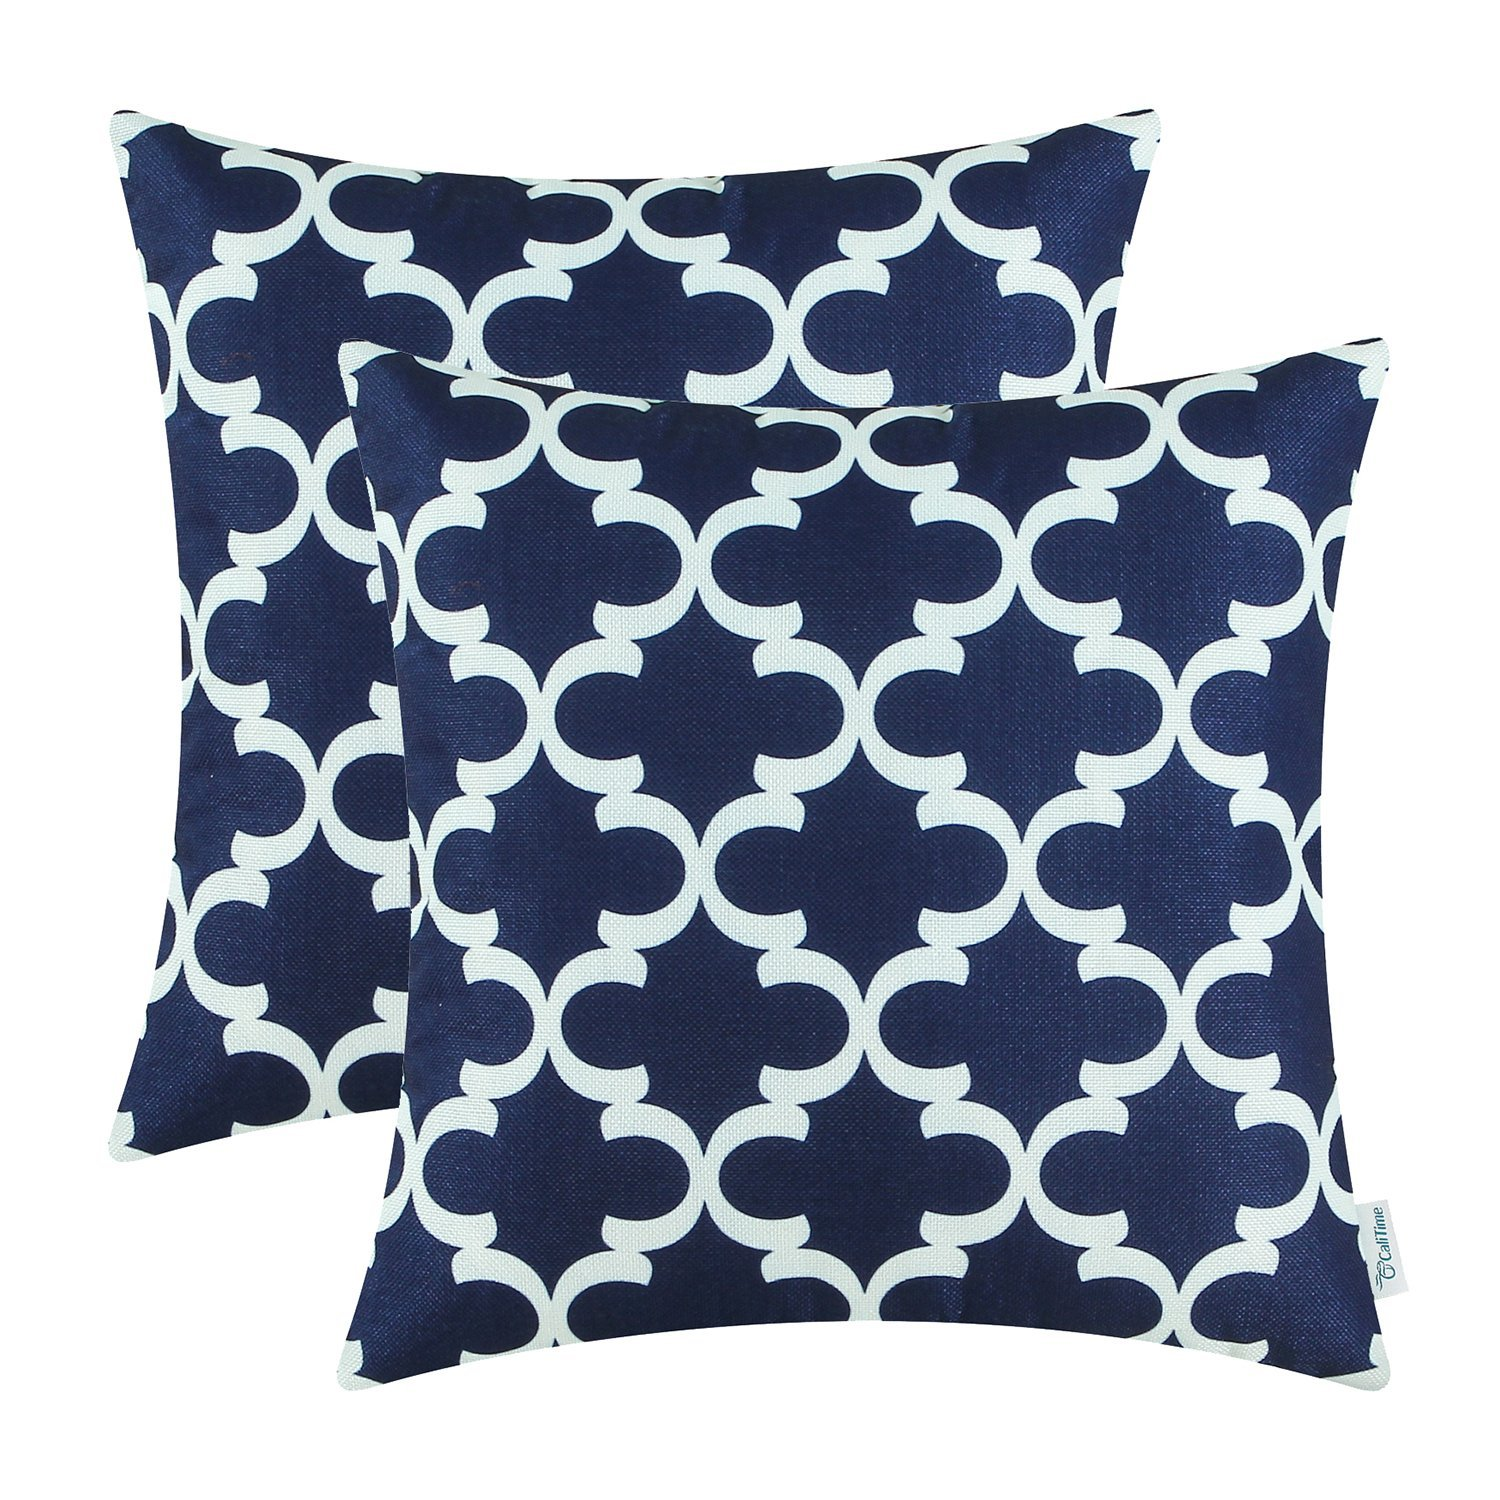 Pack of 2 CaliTime Throw Pillow Covers 18 X 18 Inches, Quatrefoil Accent Geometric, Navy Blue